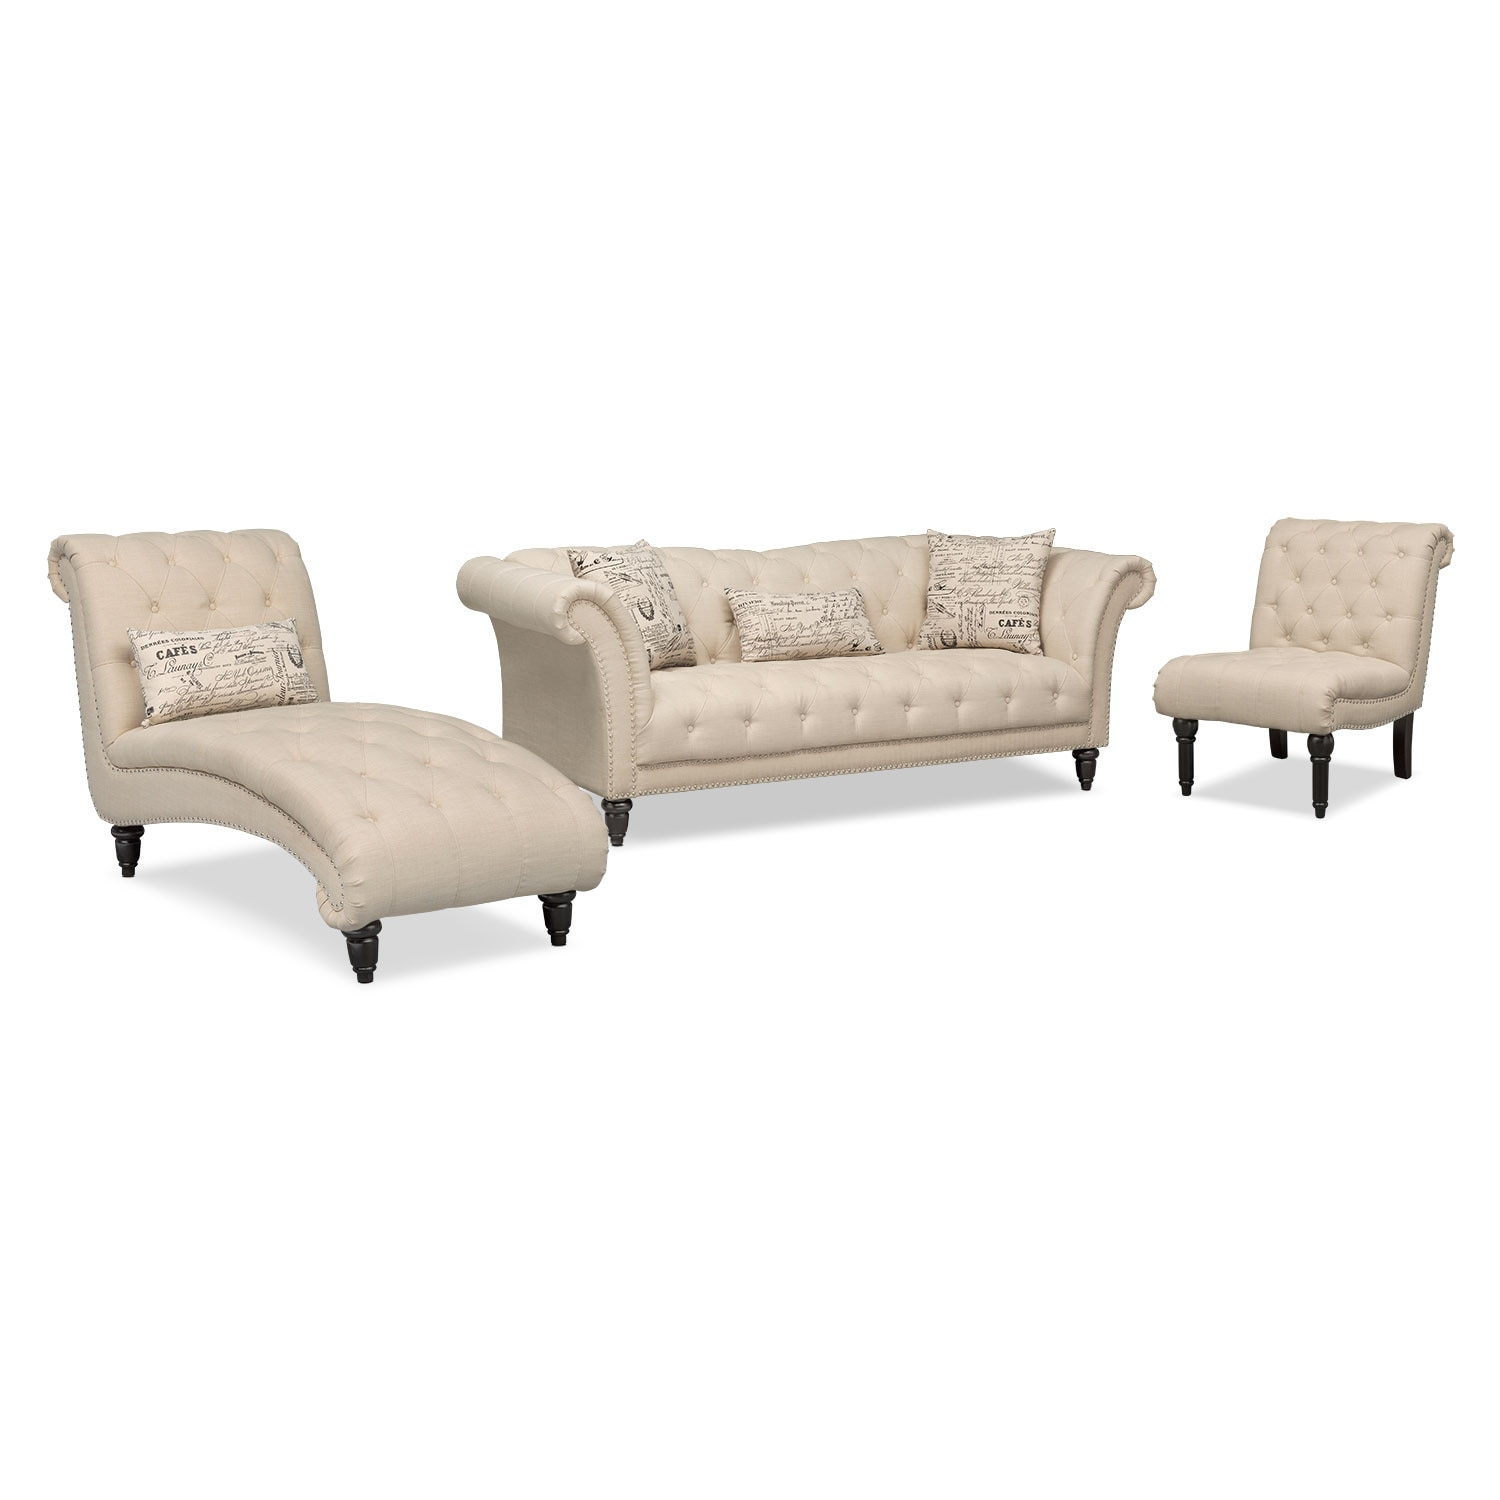 Awesome Marisol Sofa, Chaise And Armless Chair   Beige